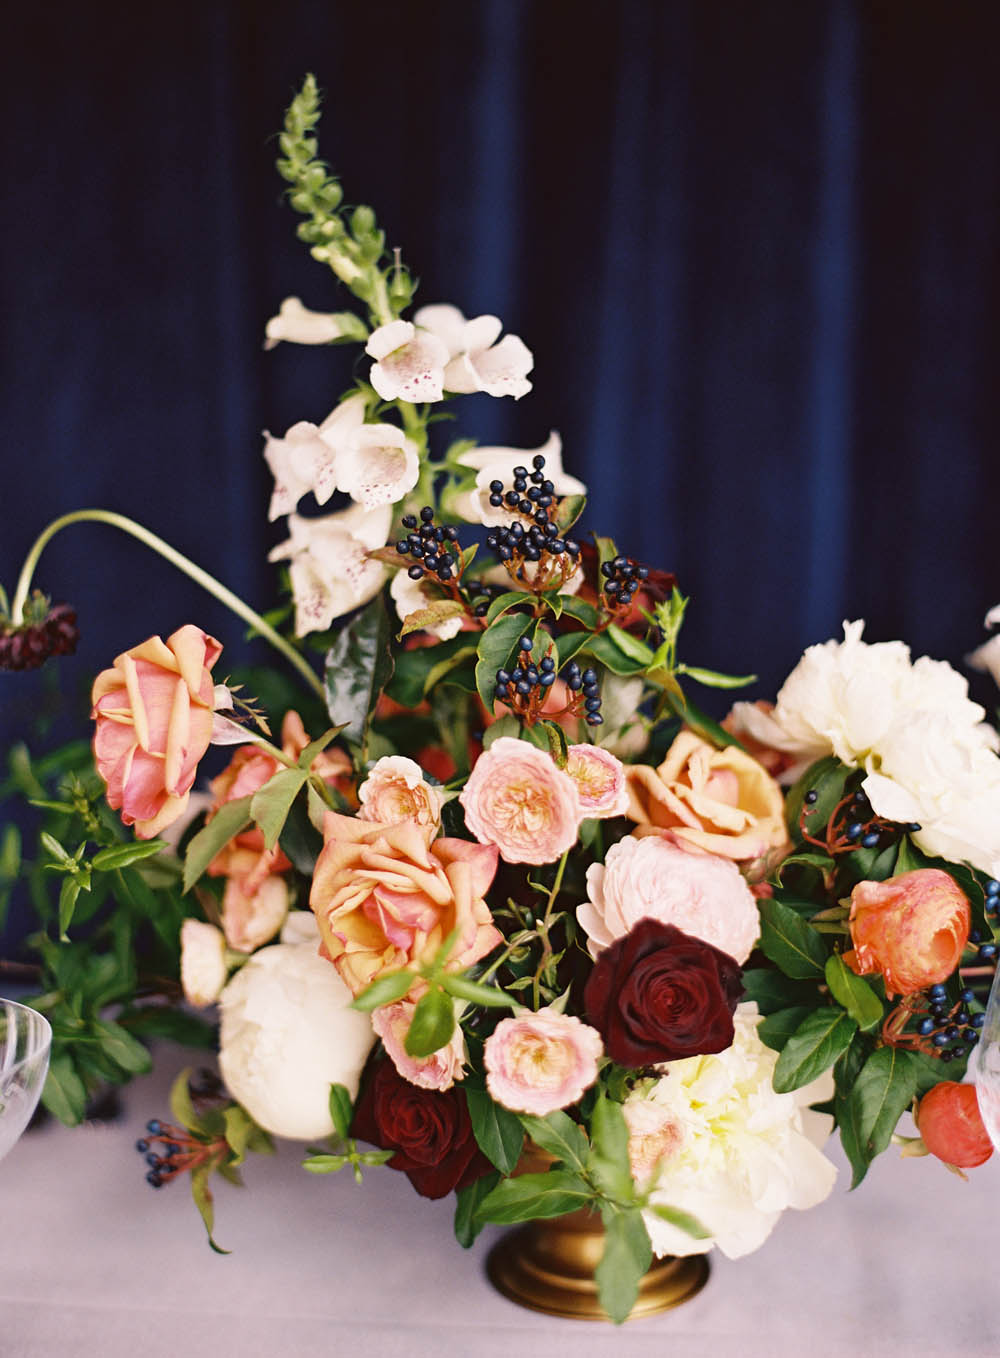 stacie_shea_floral_design_workshop.jpg